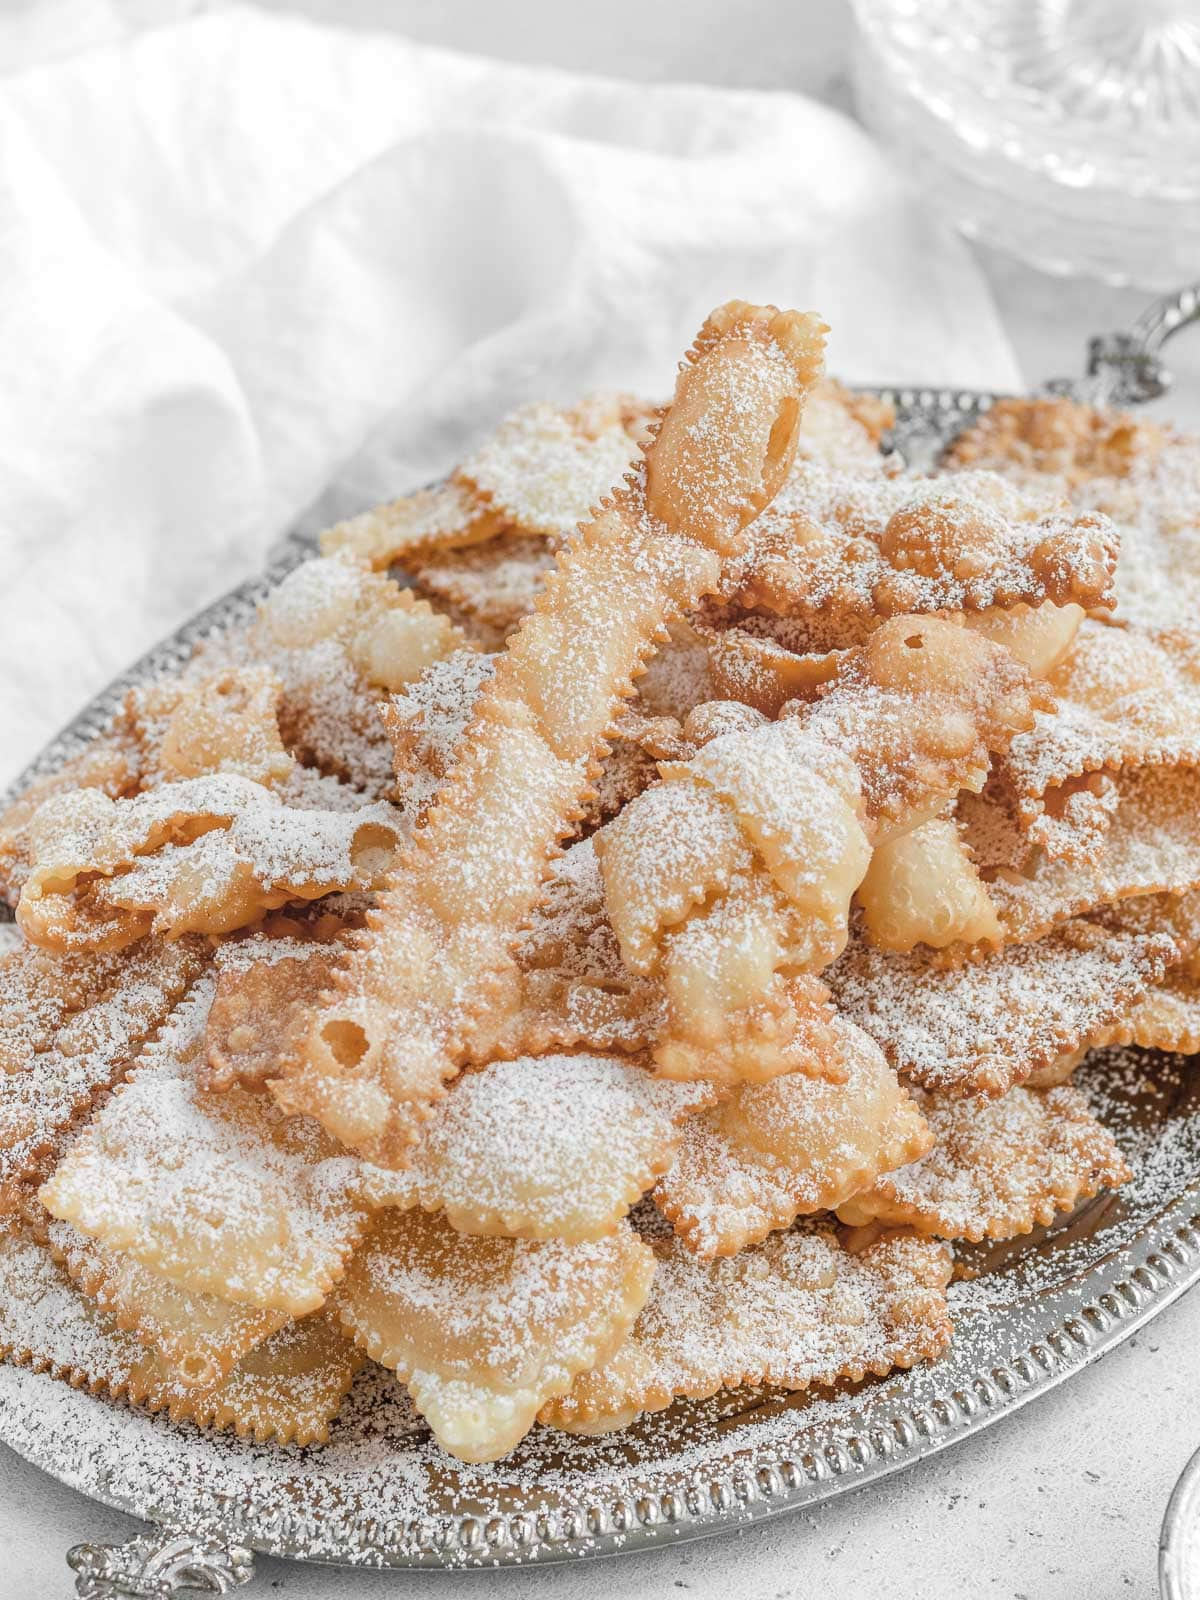 Italian Chiacchiere deep fried